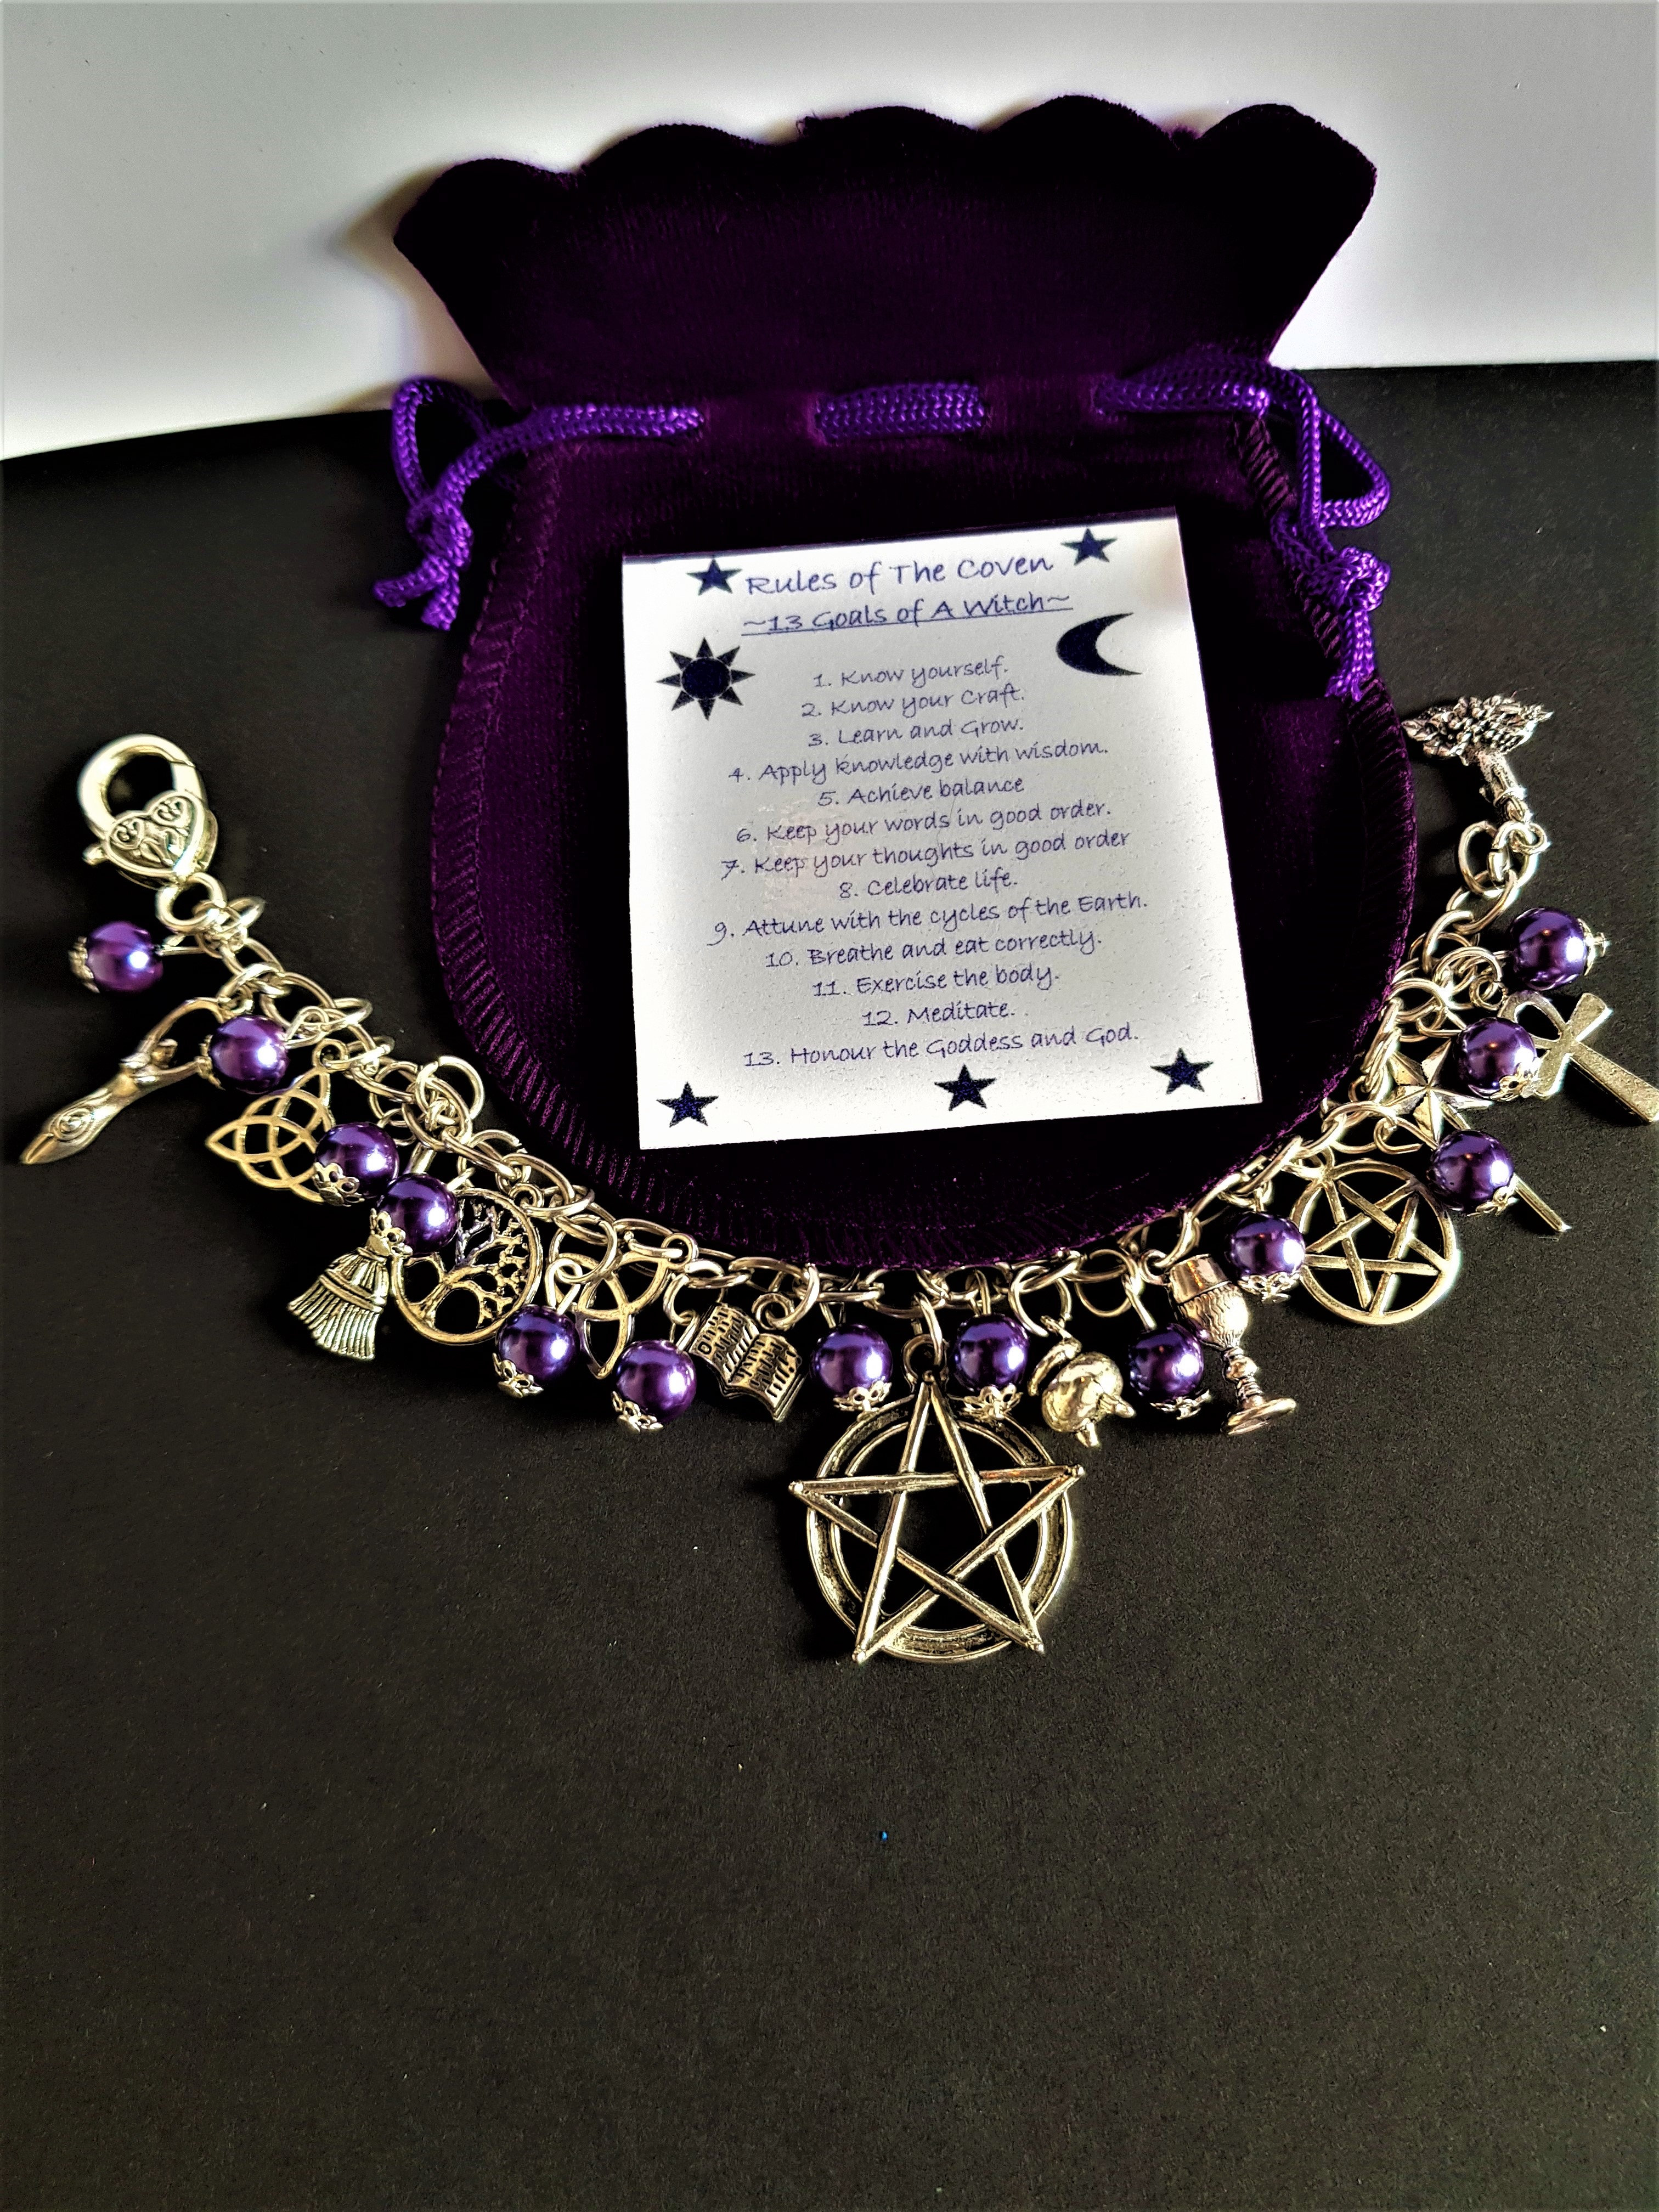 e5d299da050b8 Witch's Coven ~ Charm Bracelet ~ Symbolic Coven Rules | witchcraftstore-uk